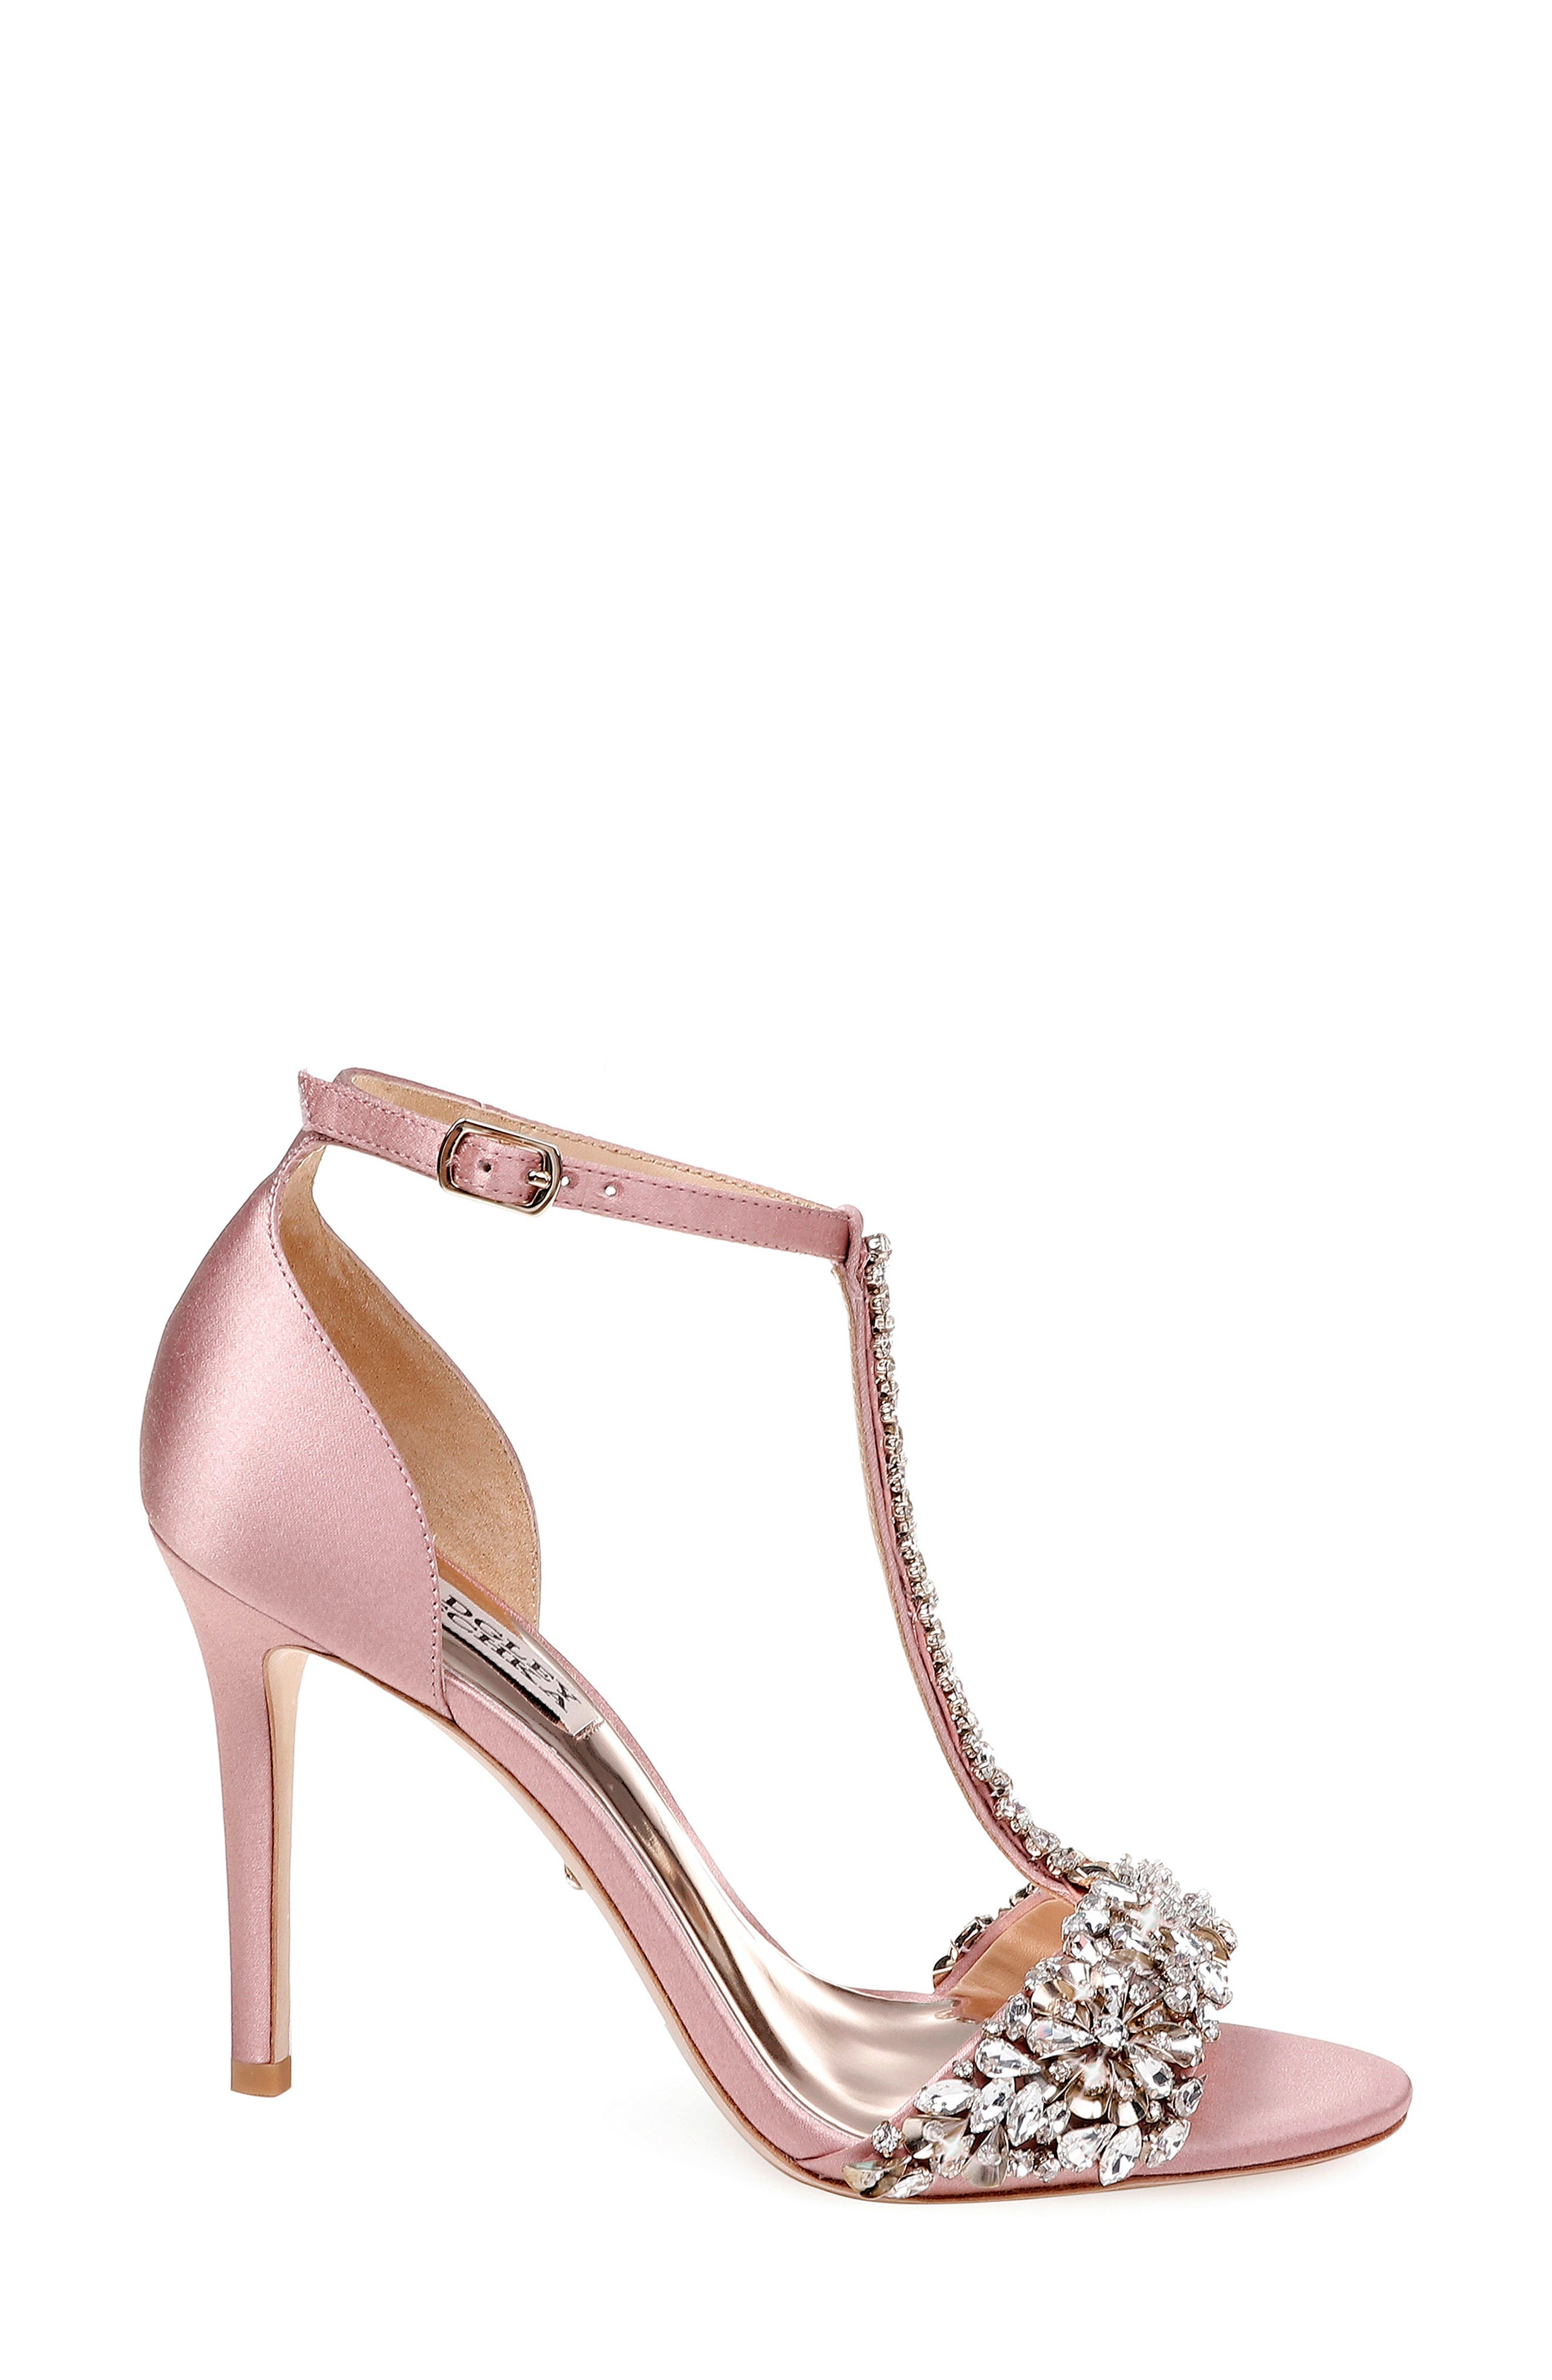 BADGLEY MISCHKA COLLECTION, Badgley Mischka Crystal Embellished Sandal, Alternate thumbnail 3, color, PINK ROSE SATIN